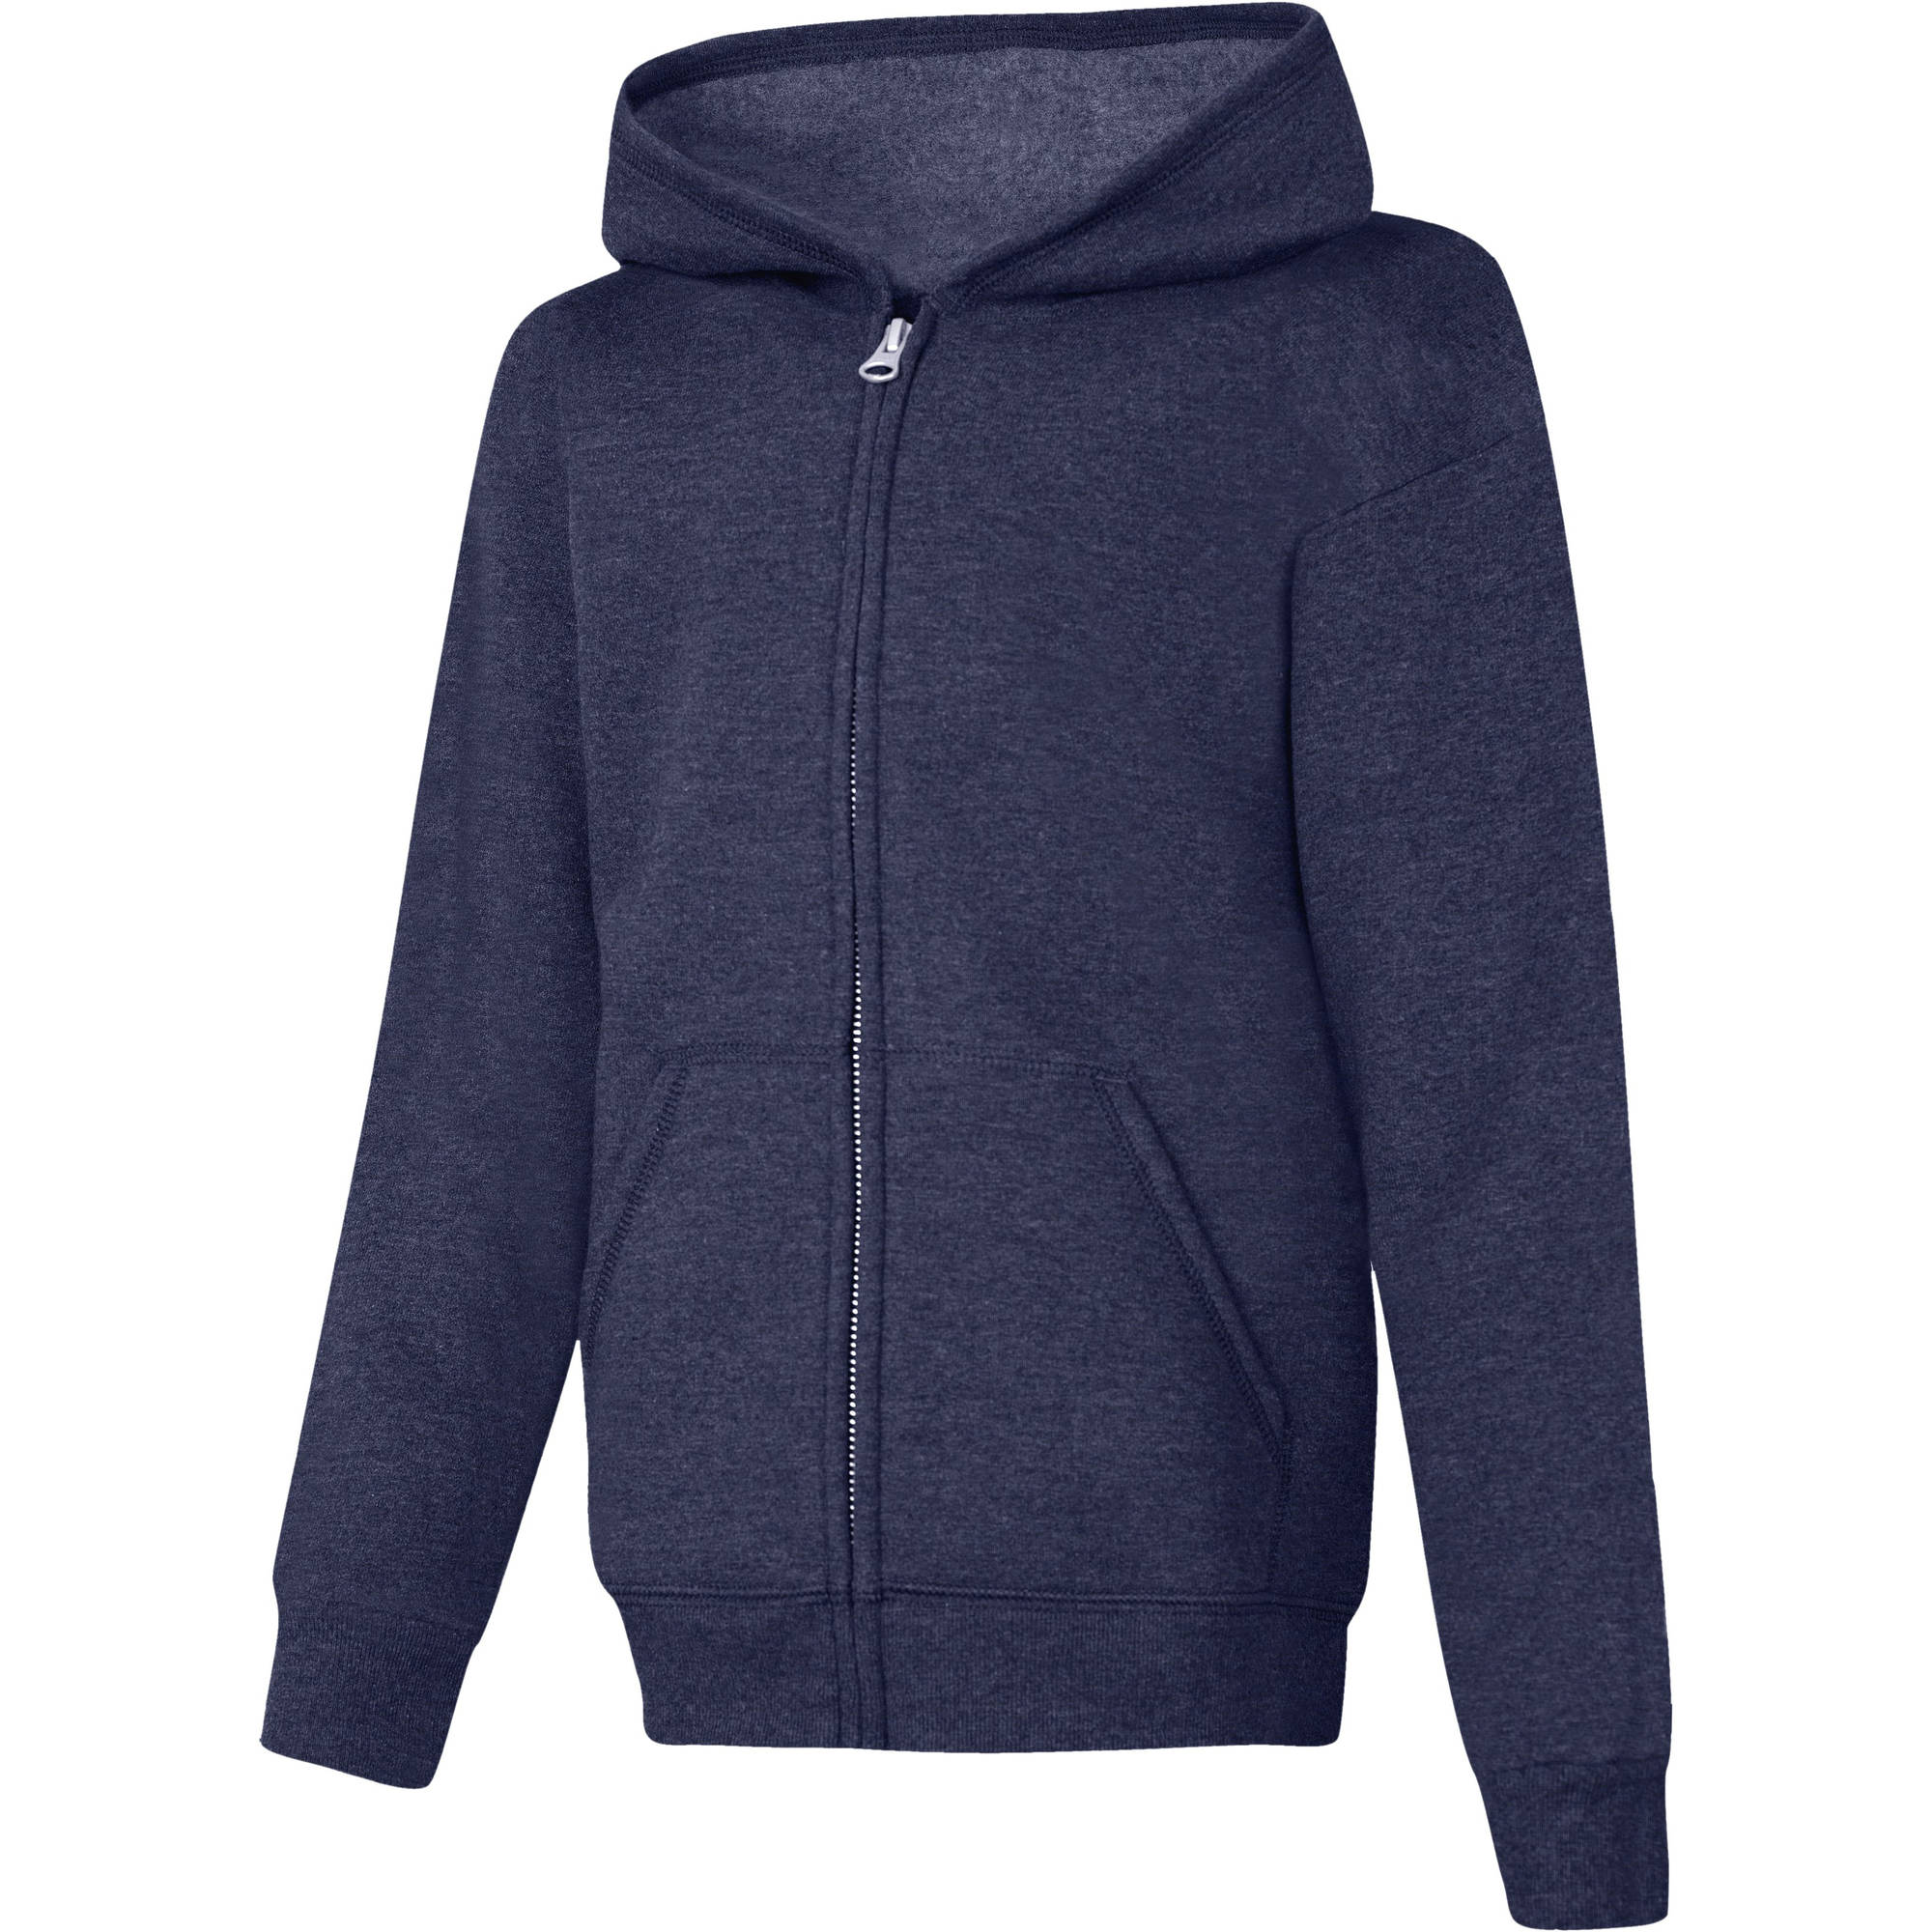 Hanes Boys' Fleece Zip Hood Jacket